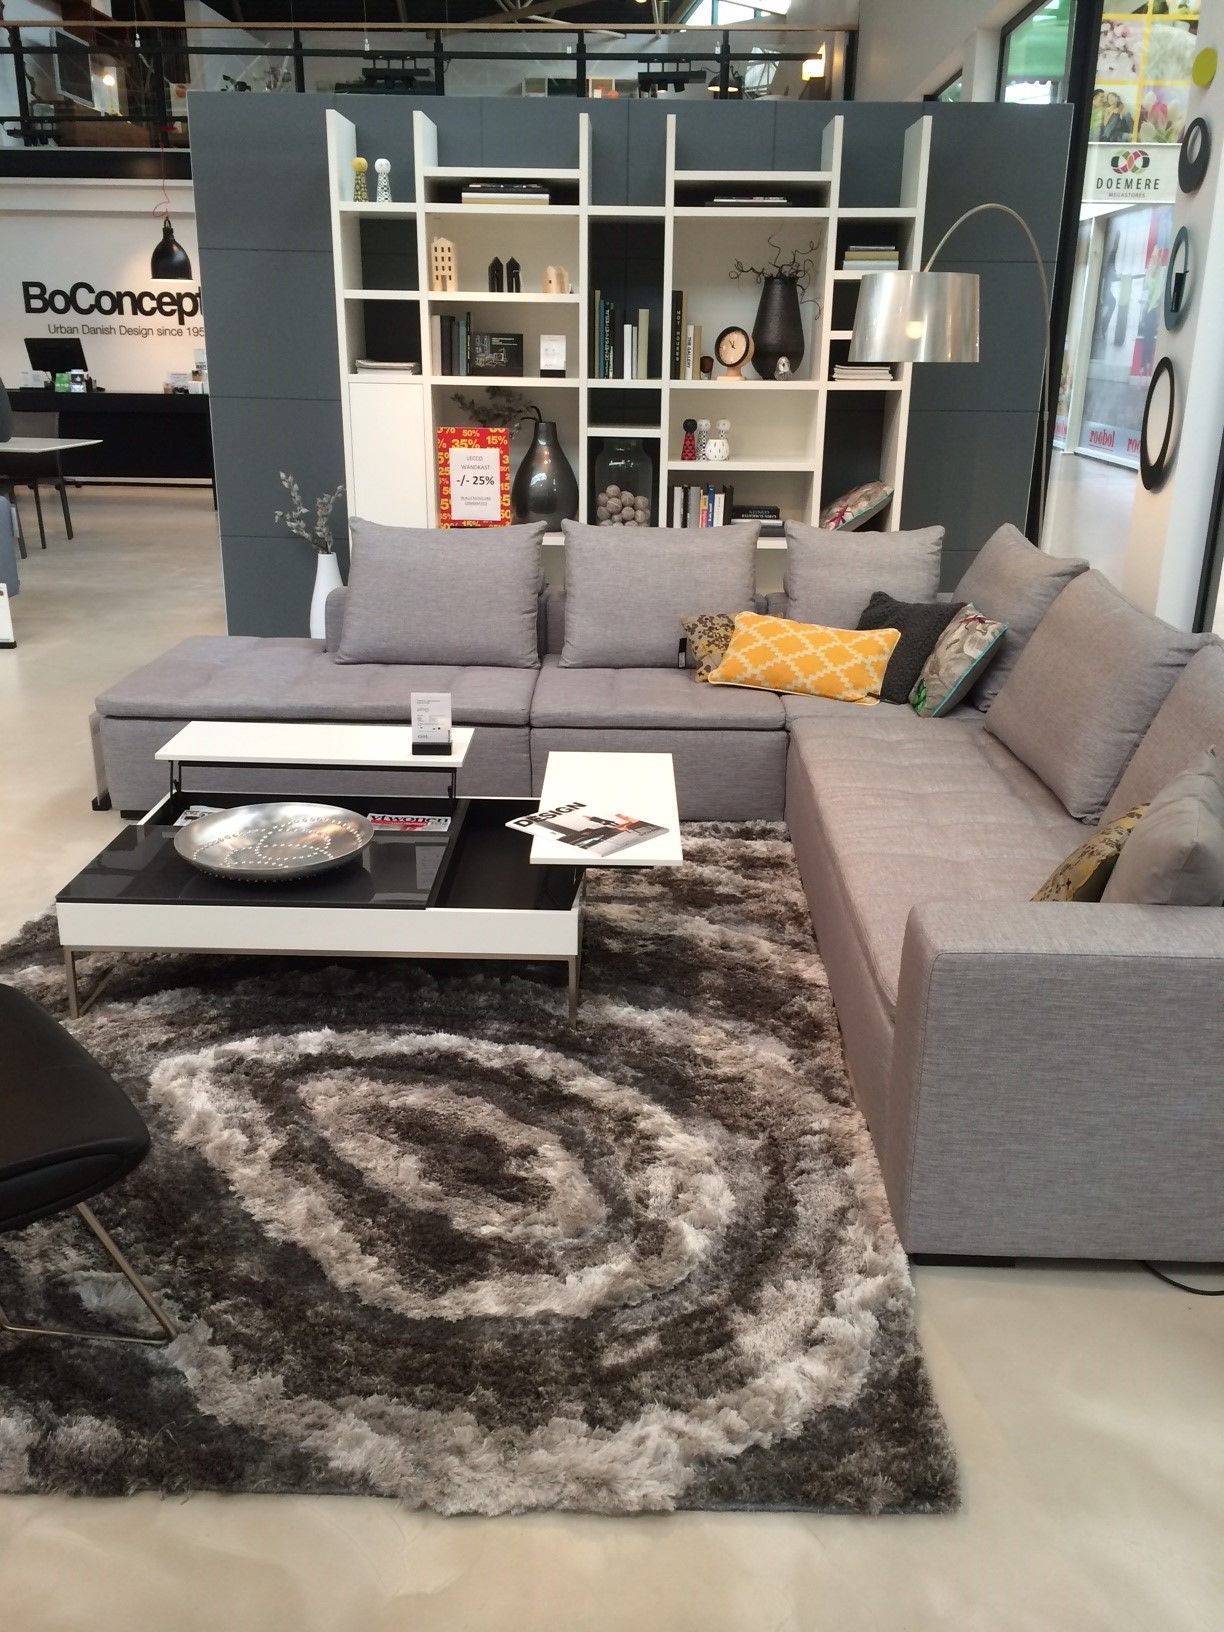 BoConcept Mezzo sofa Chiva coffee table Lecco wall system and